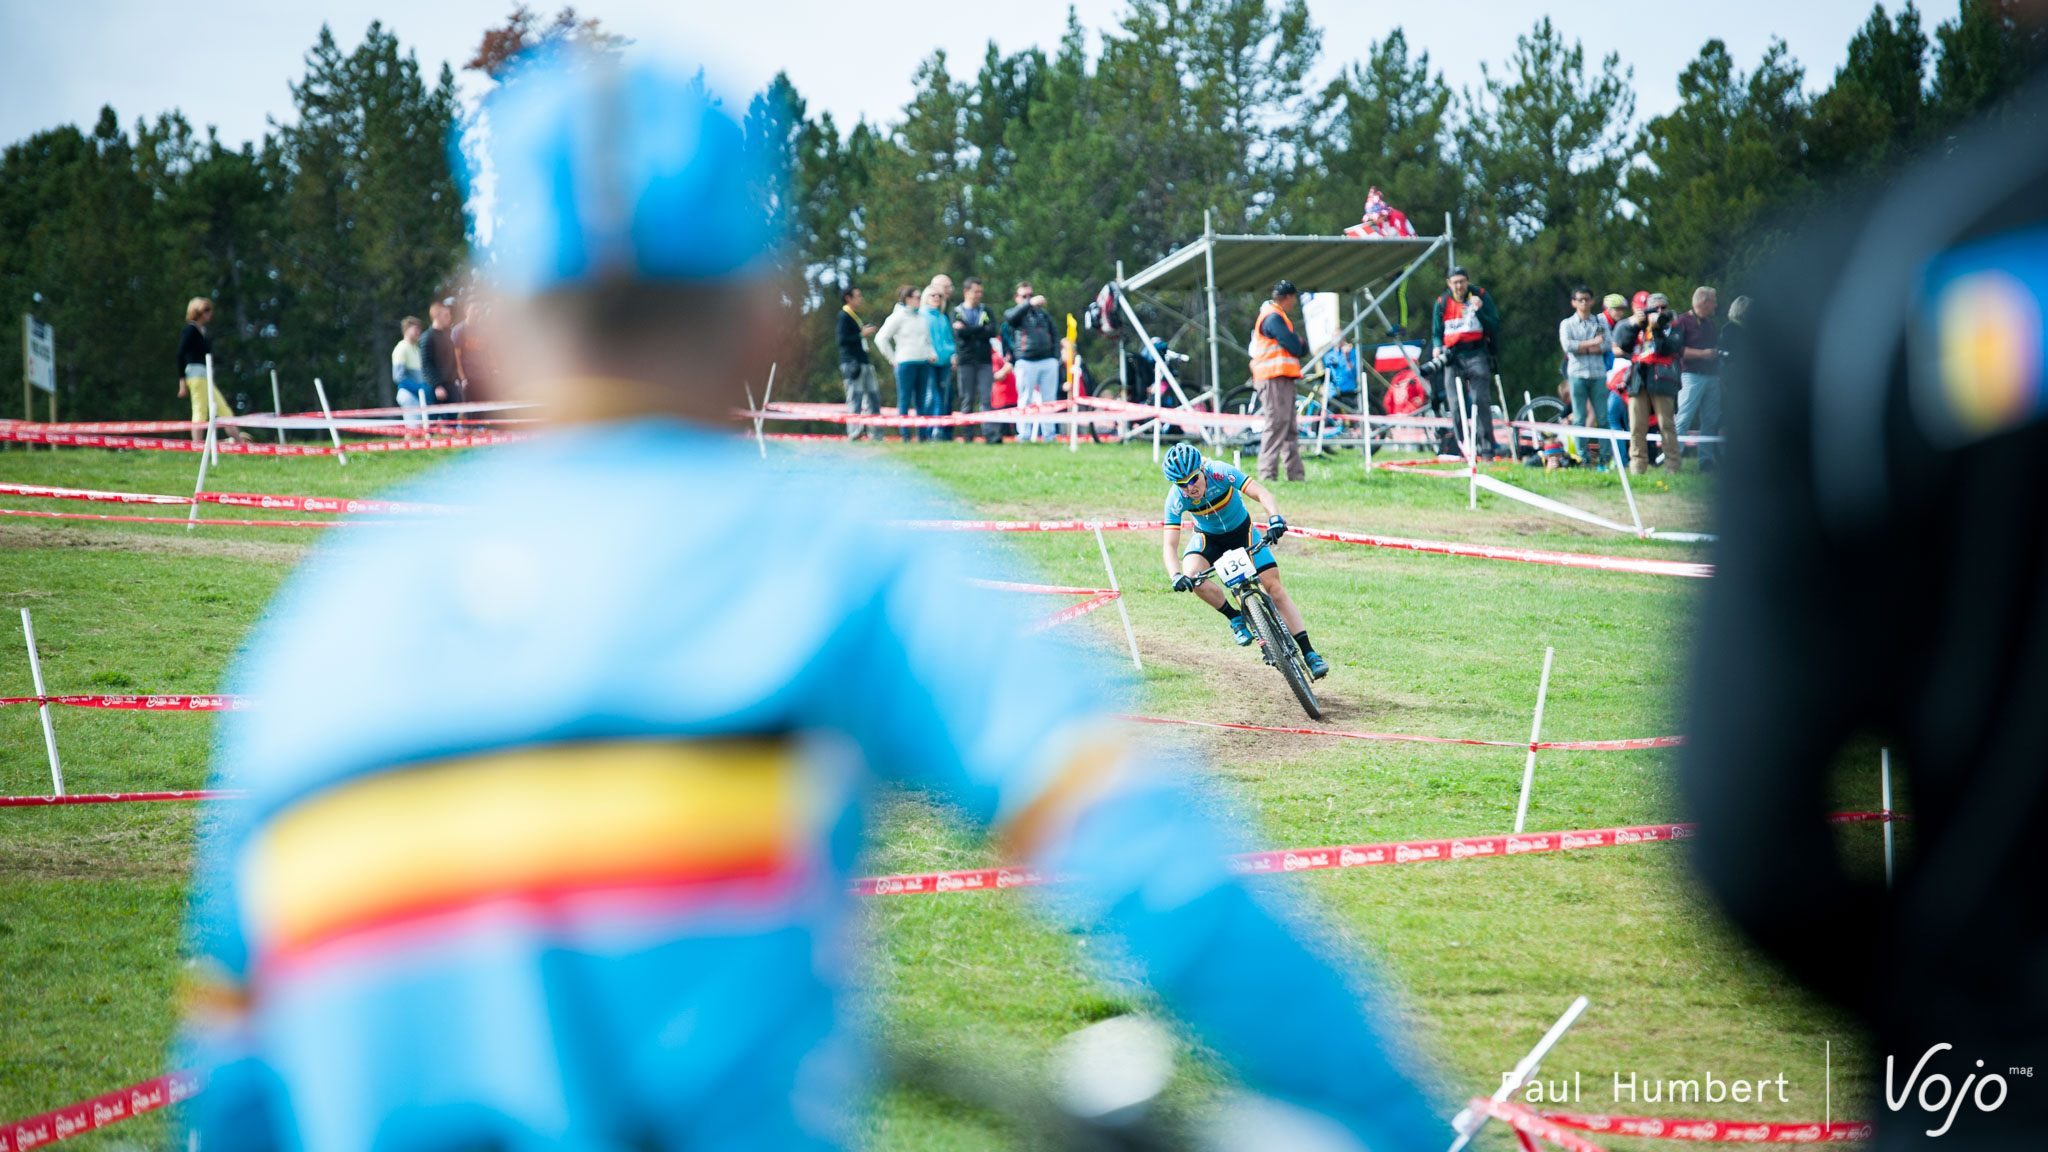 Worldchamps-2015-vojo-paul-humbert-xc-relai-10